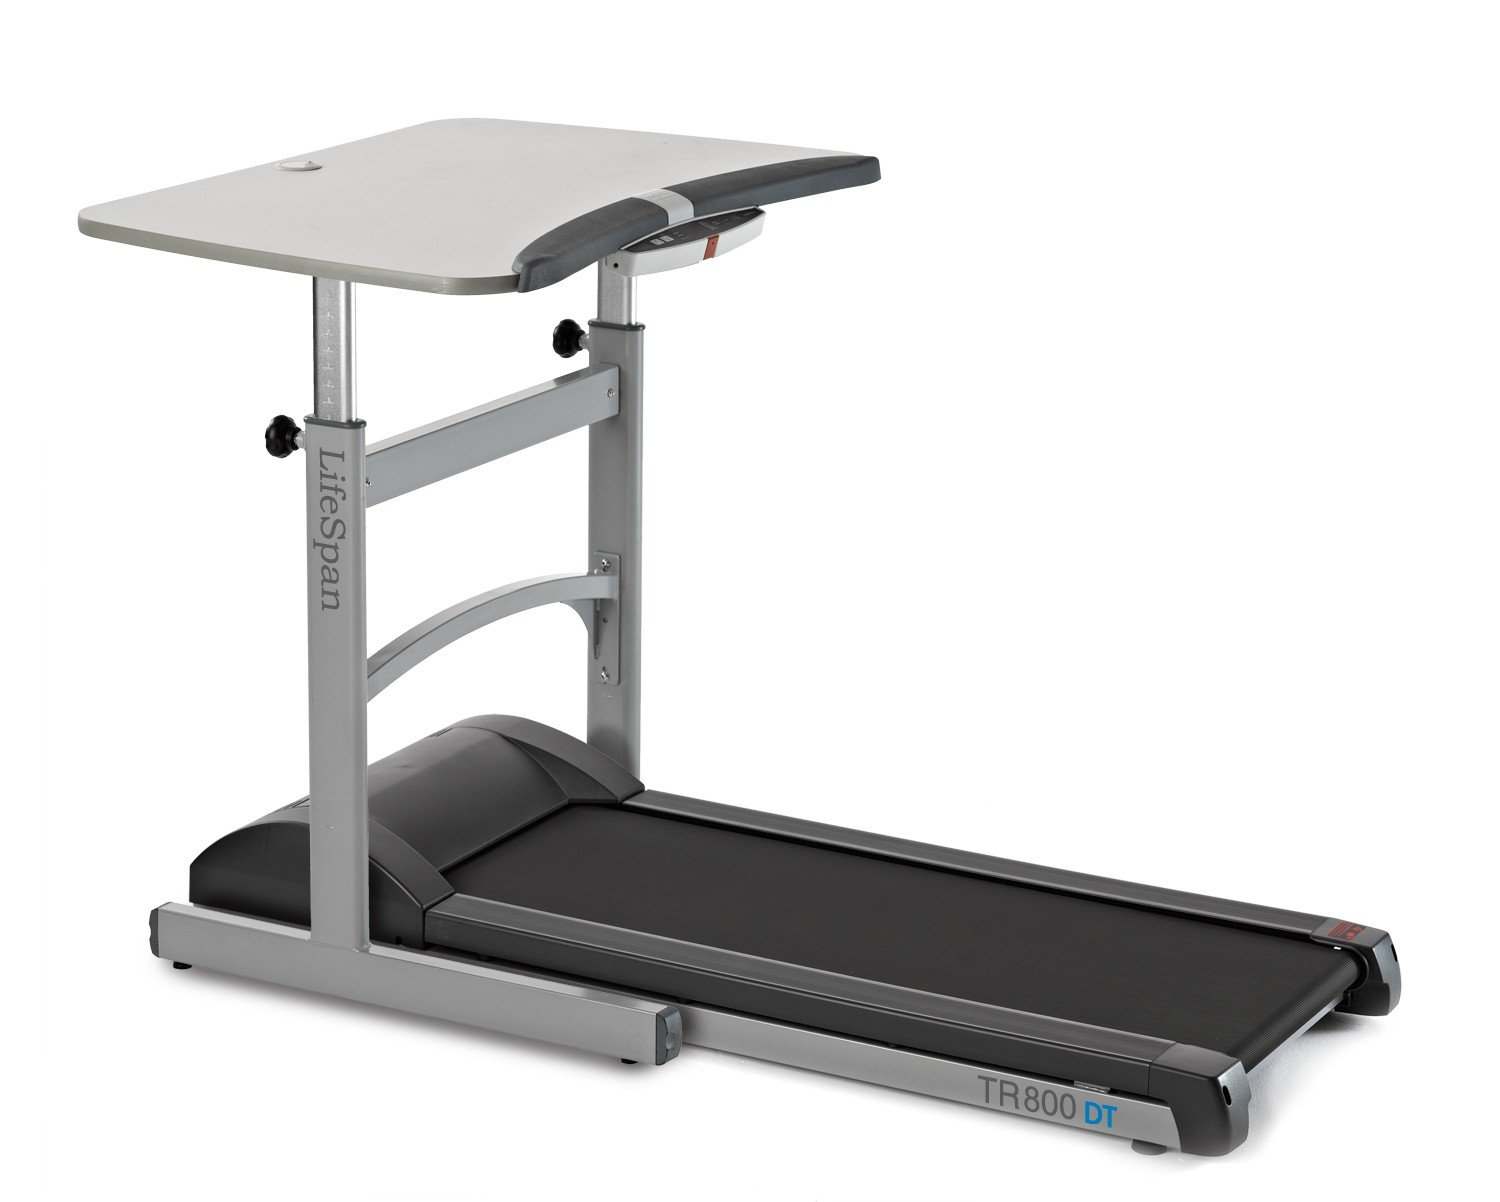 treadmill depot manual fitness desk lifespan